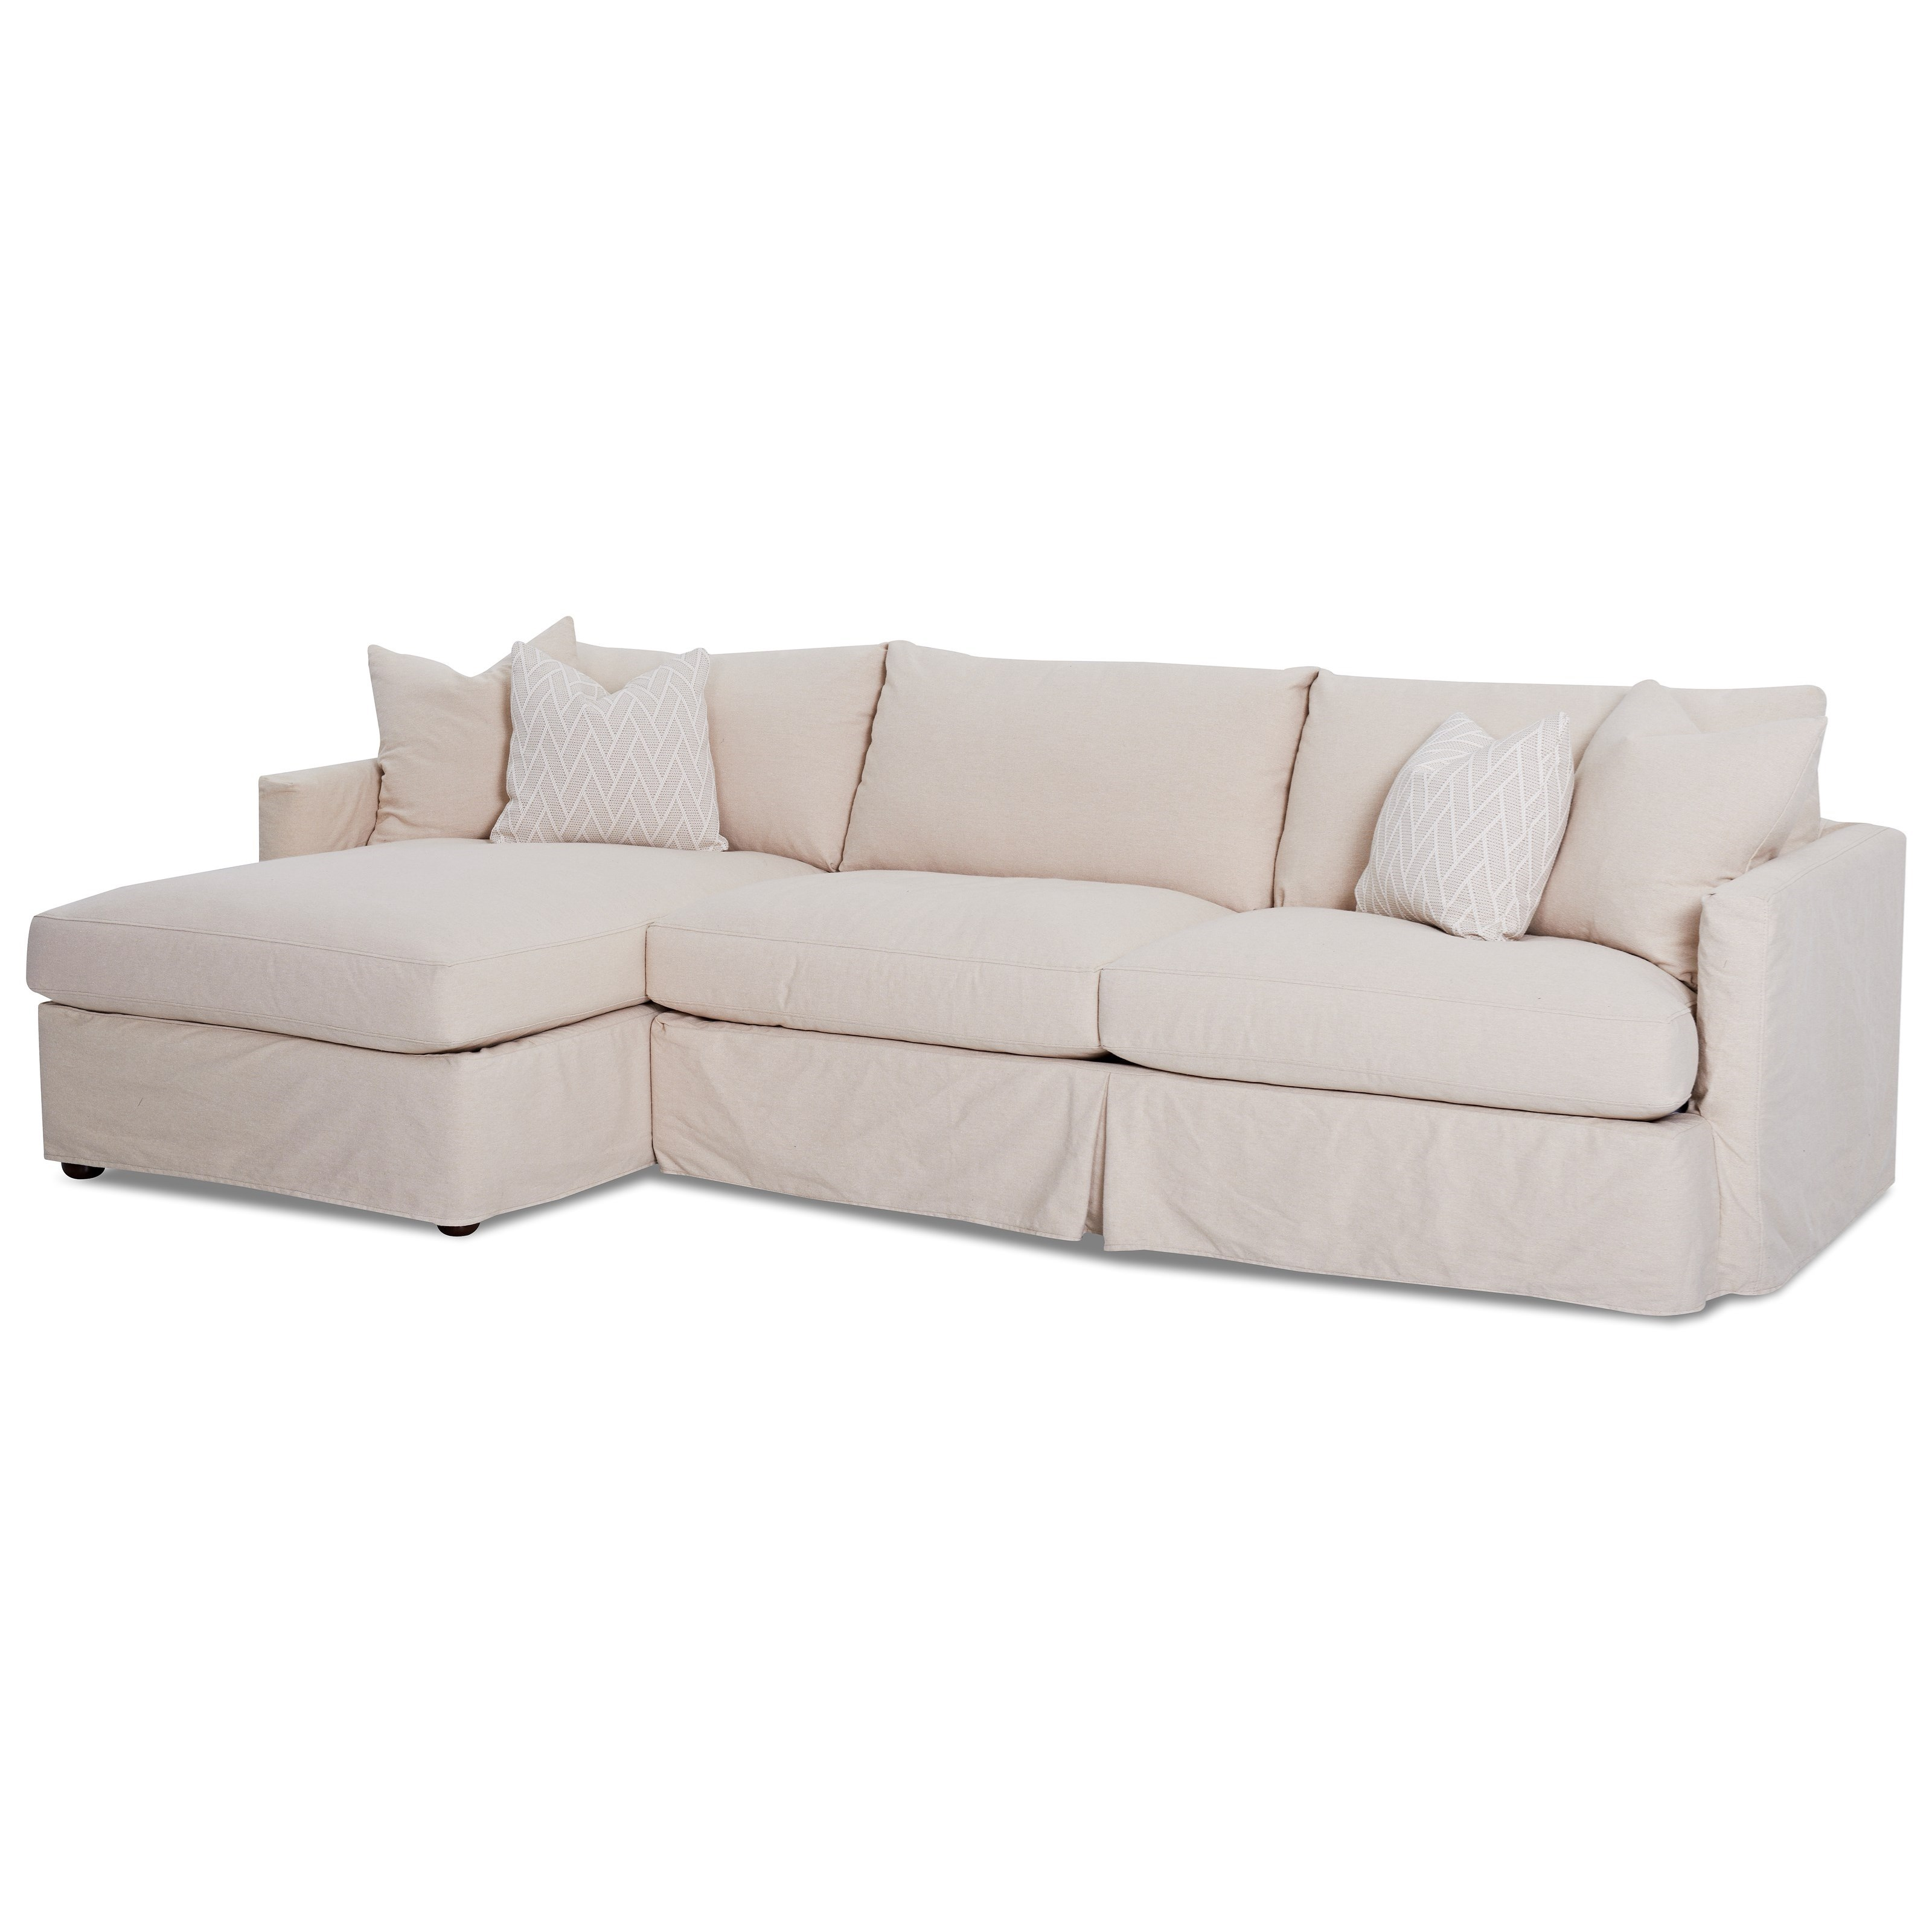 Sofa With Foam Seats Leisure 2 Pc Sectional Sofa With Slipcover And Laf Chaise By Klaussner At Novello Home Furnishings